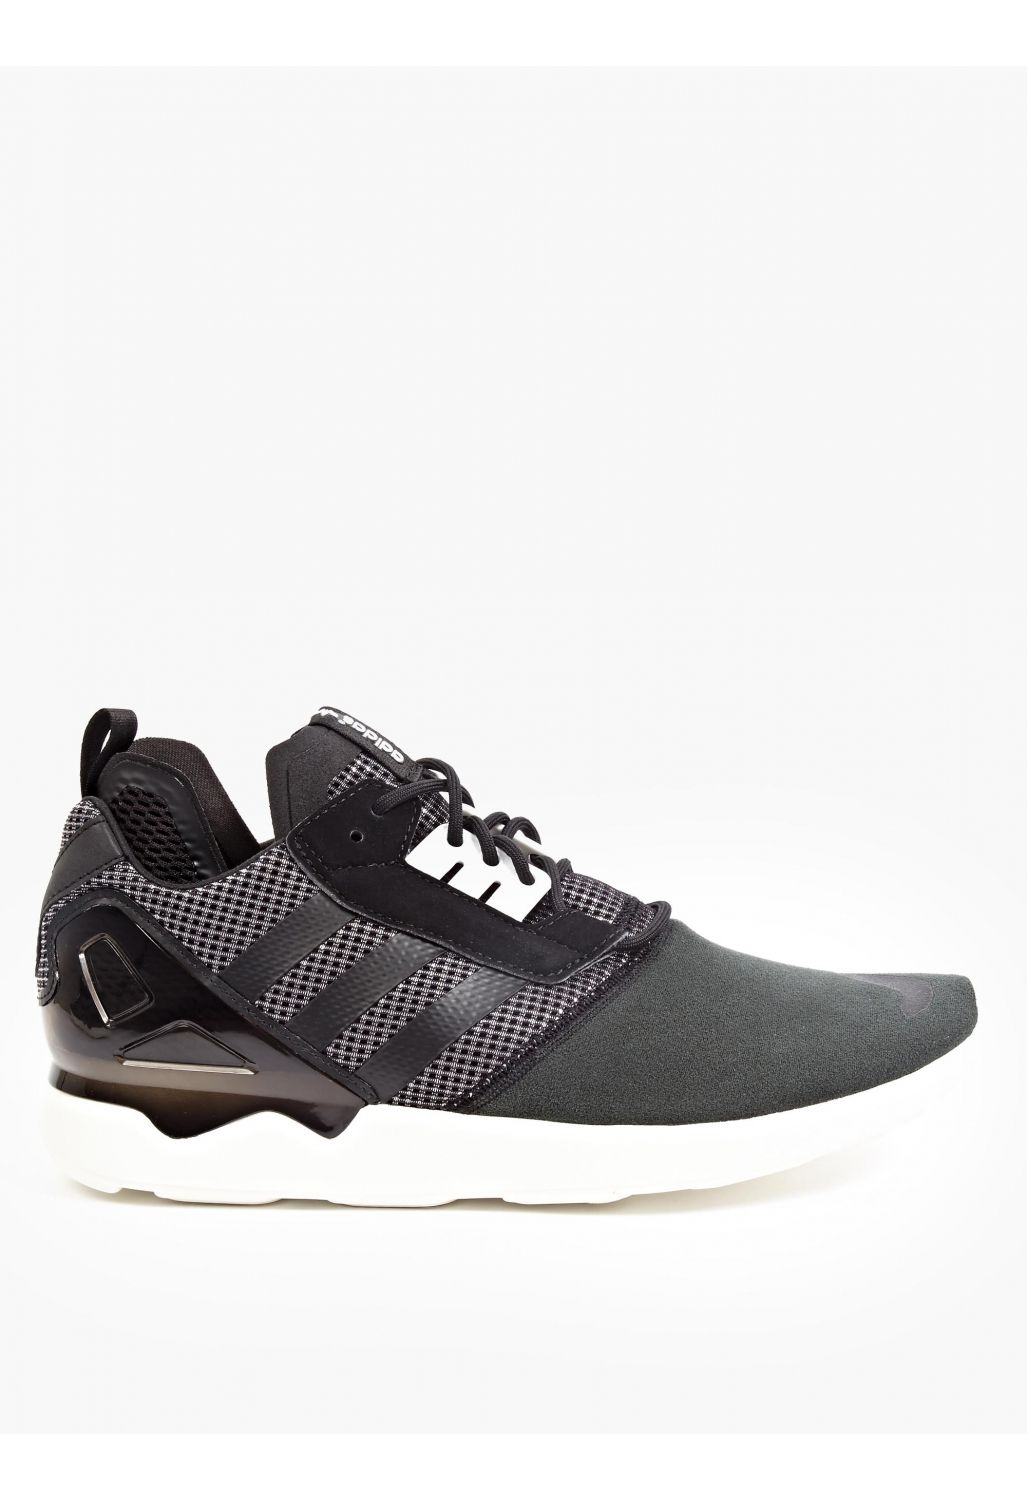 adidas Originals Men's ZX 8000 Boost Sneakers | oki-ni